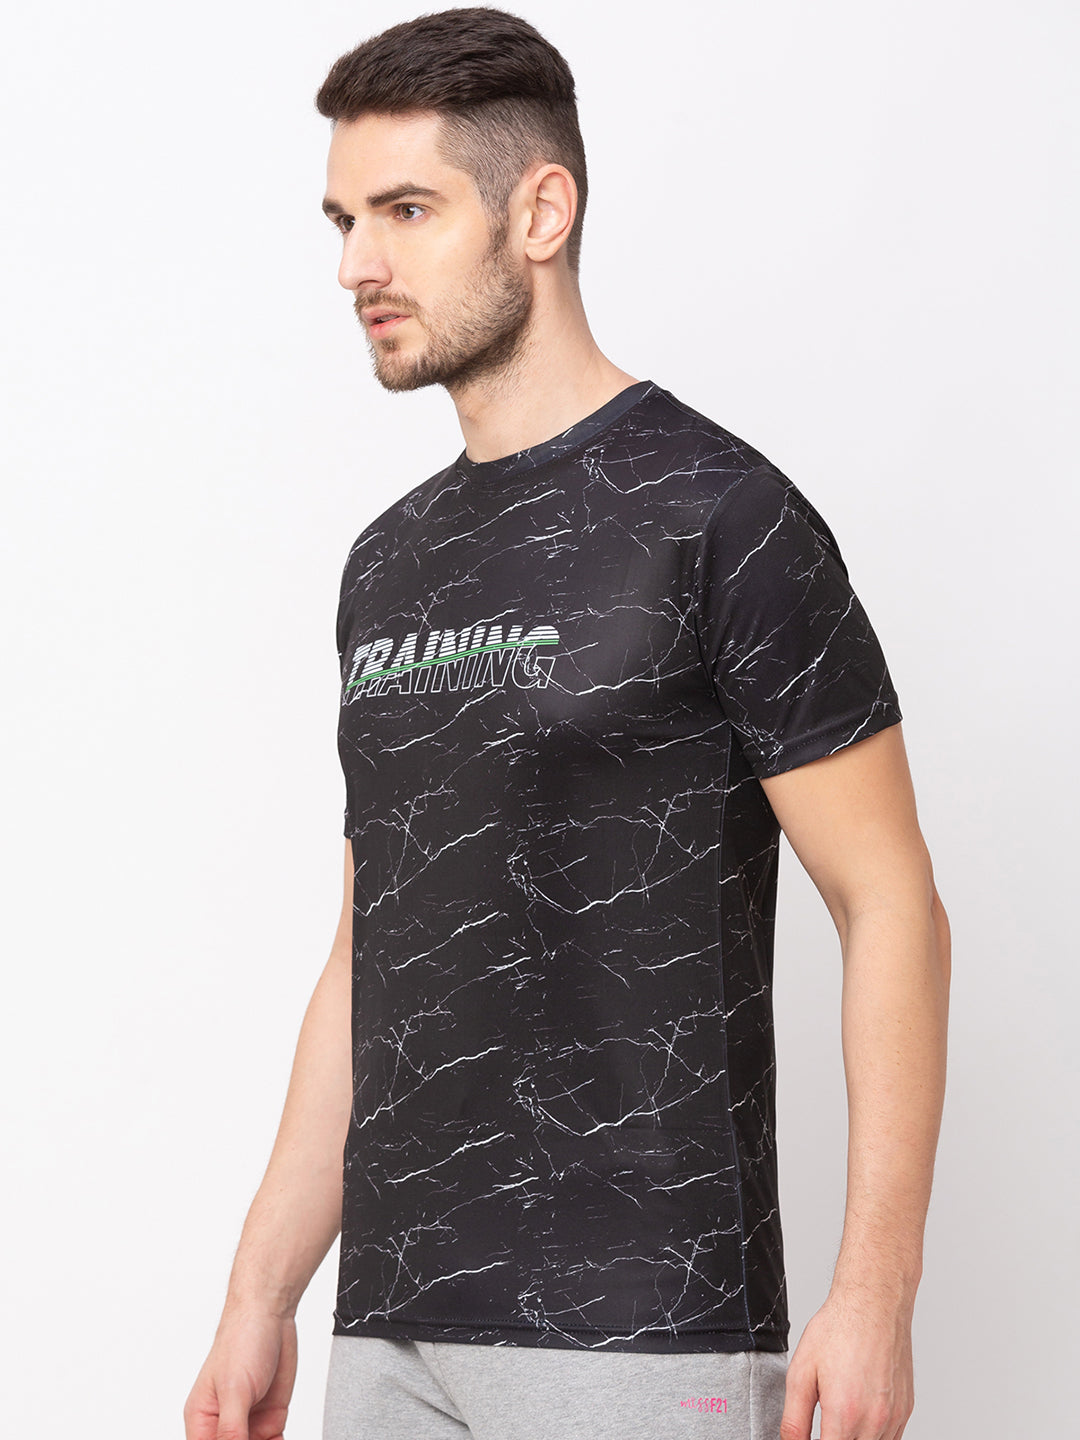 Globus Black Printed T-Shirt-2